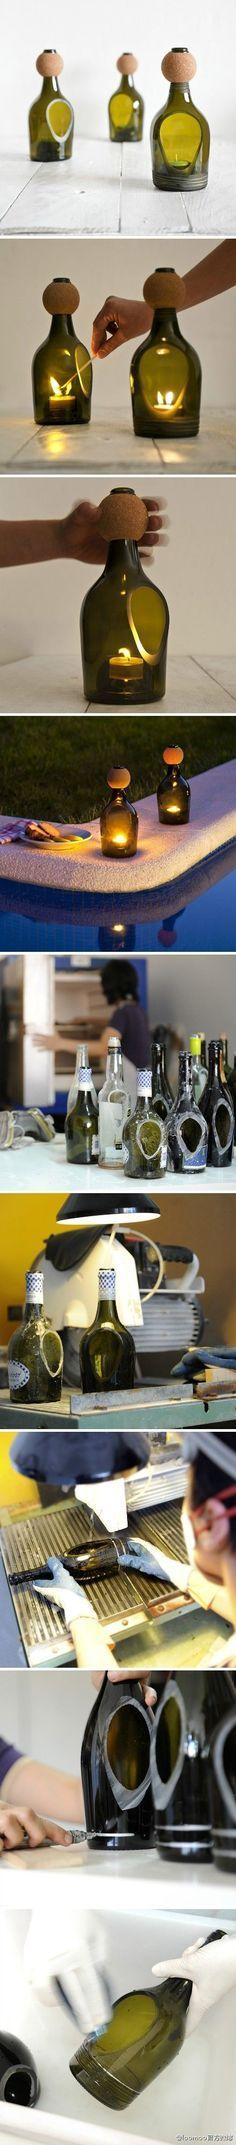 Cutting bottles on the side. Interesting.